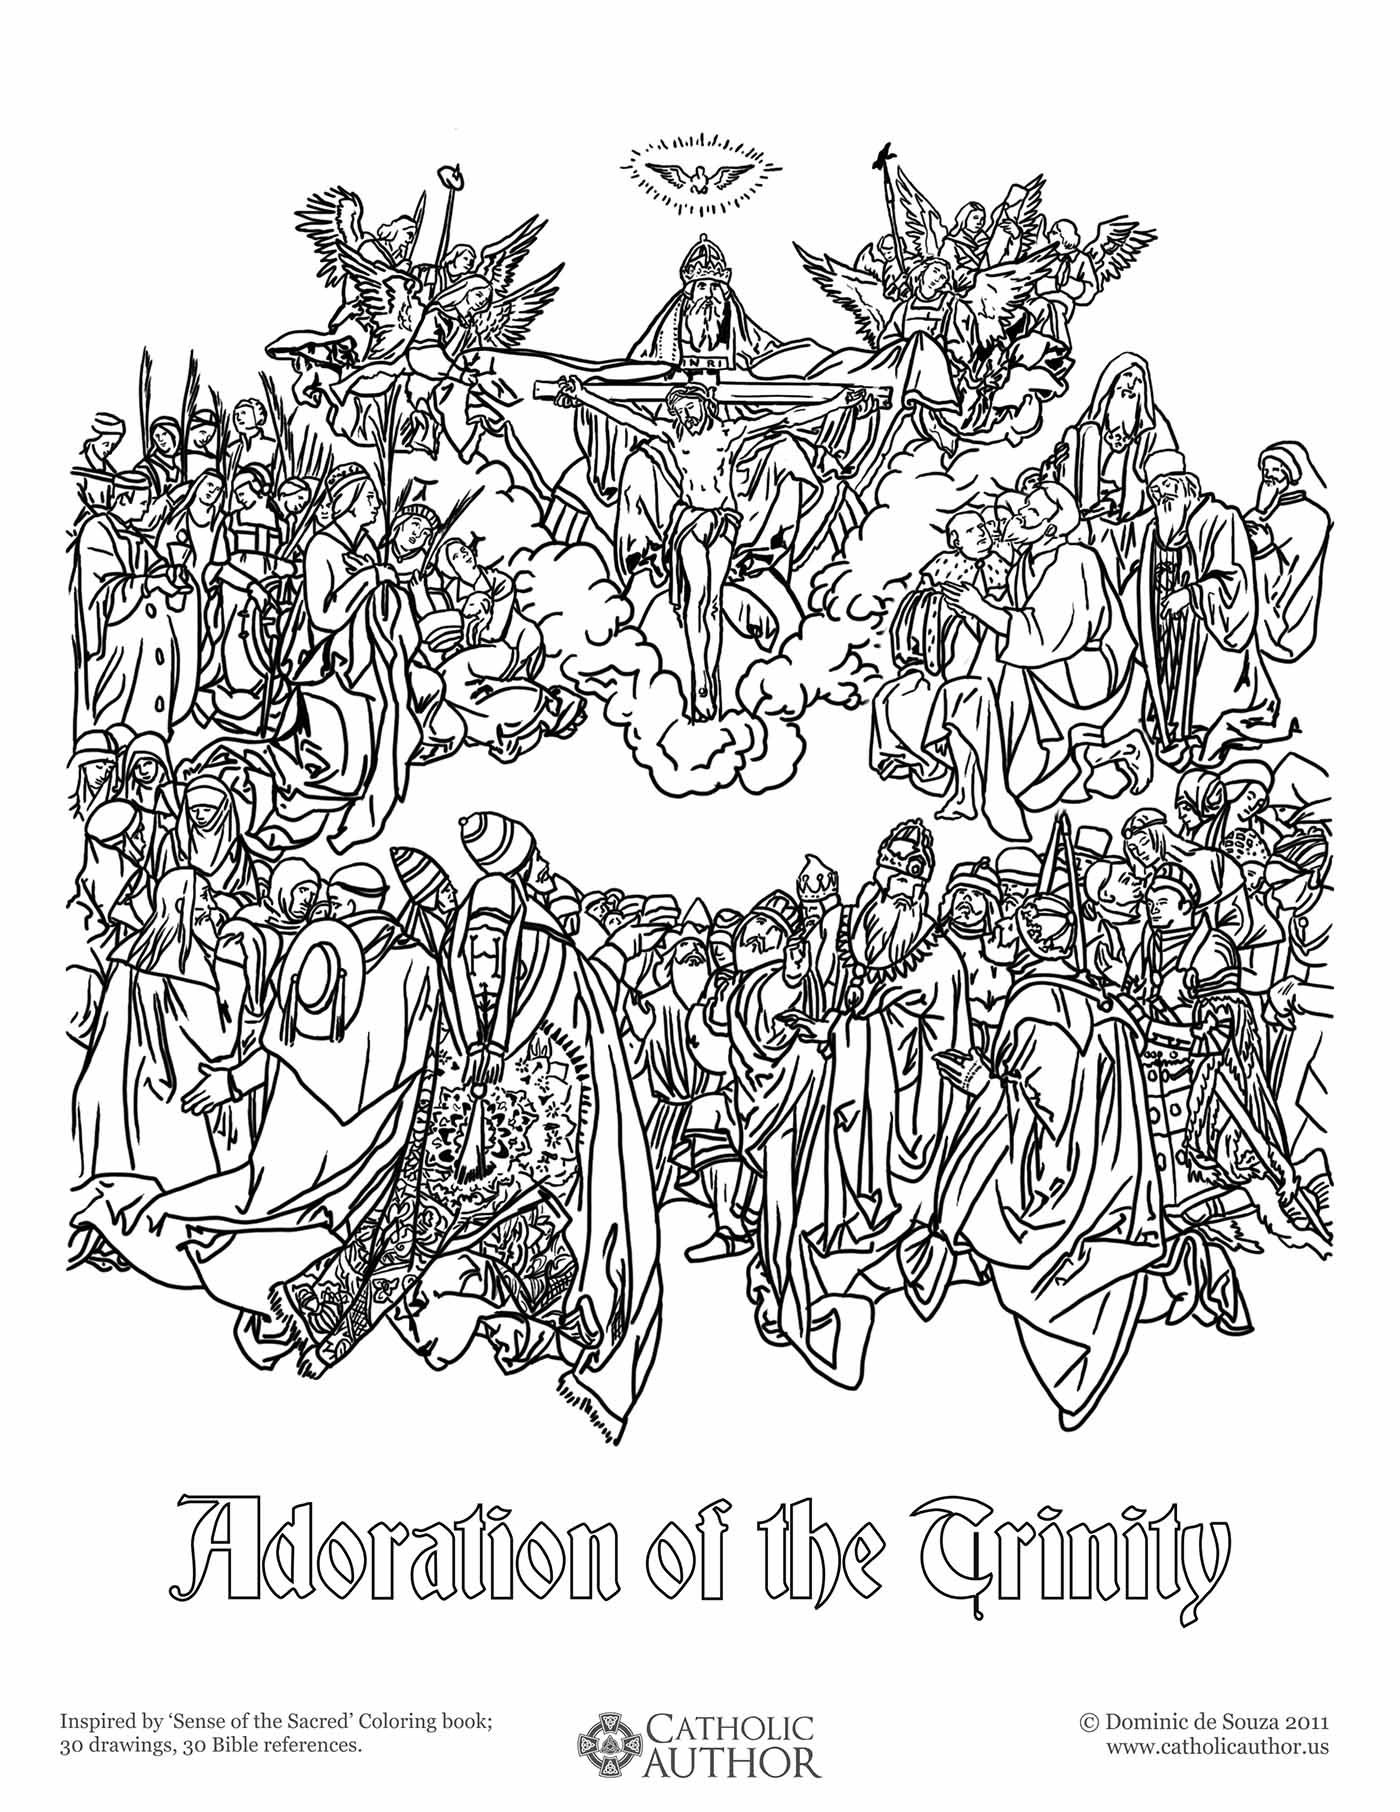 adoration of the trinity free hand drawn catholic coloring